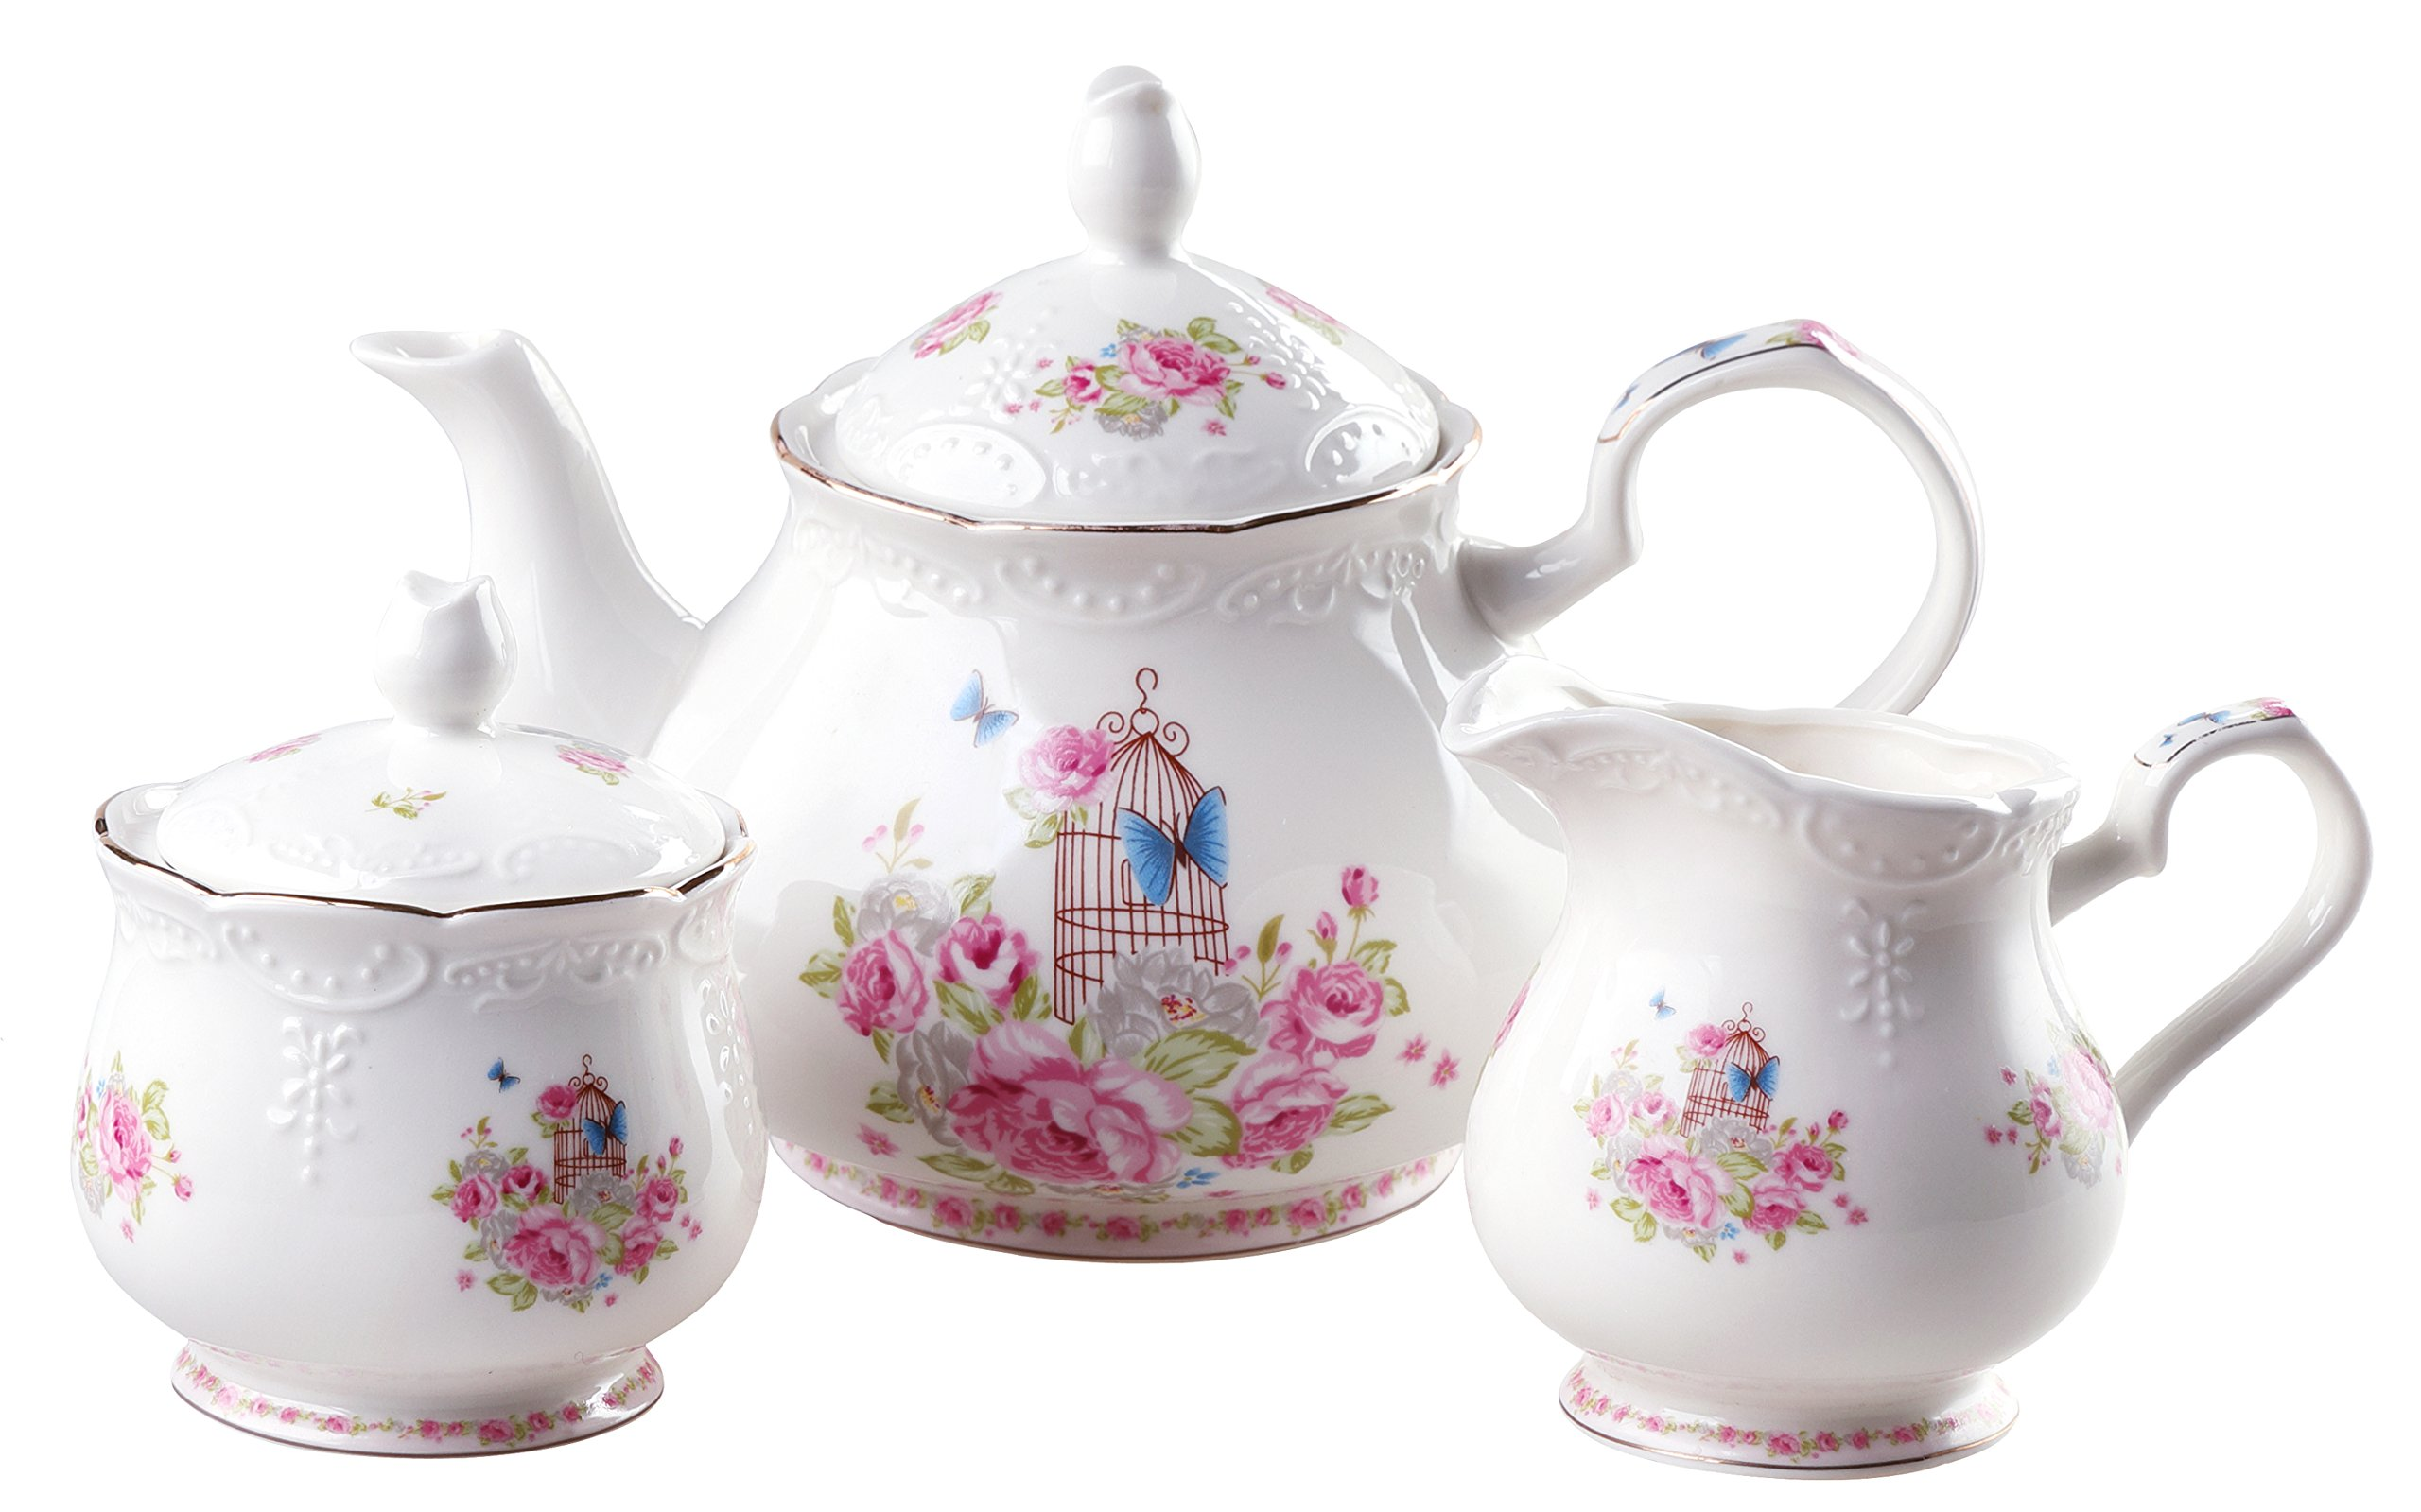 Jusalpha Fine china vintage rose teapot and creamer set (Teapot and creamer set)